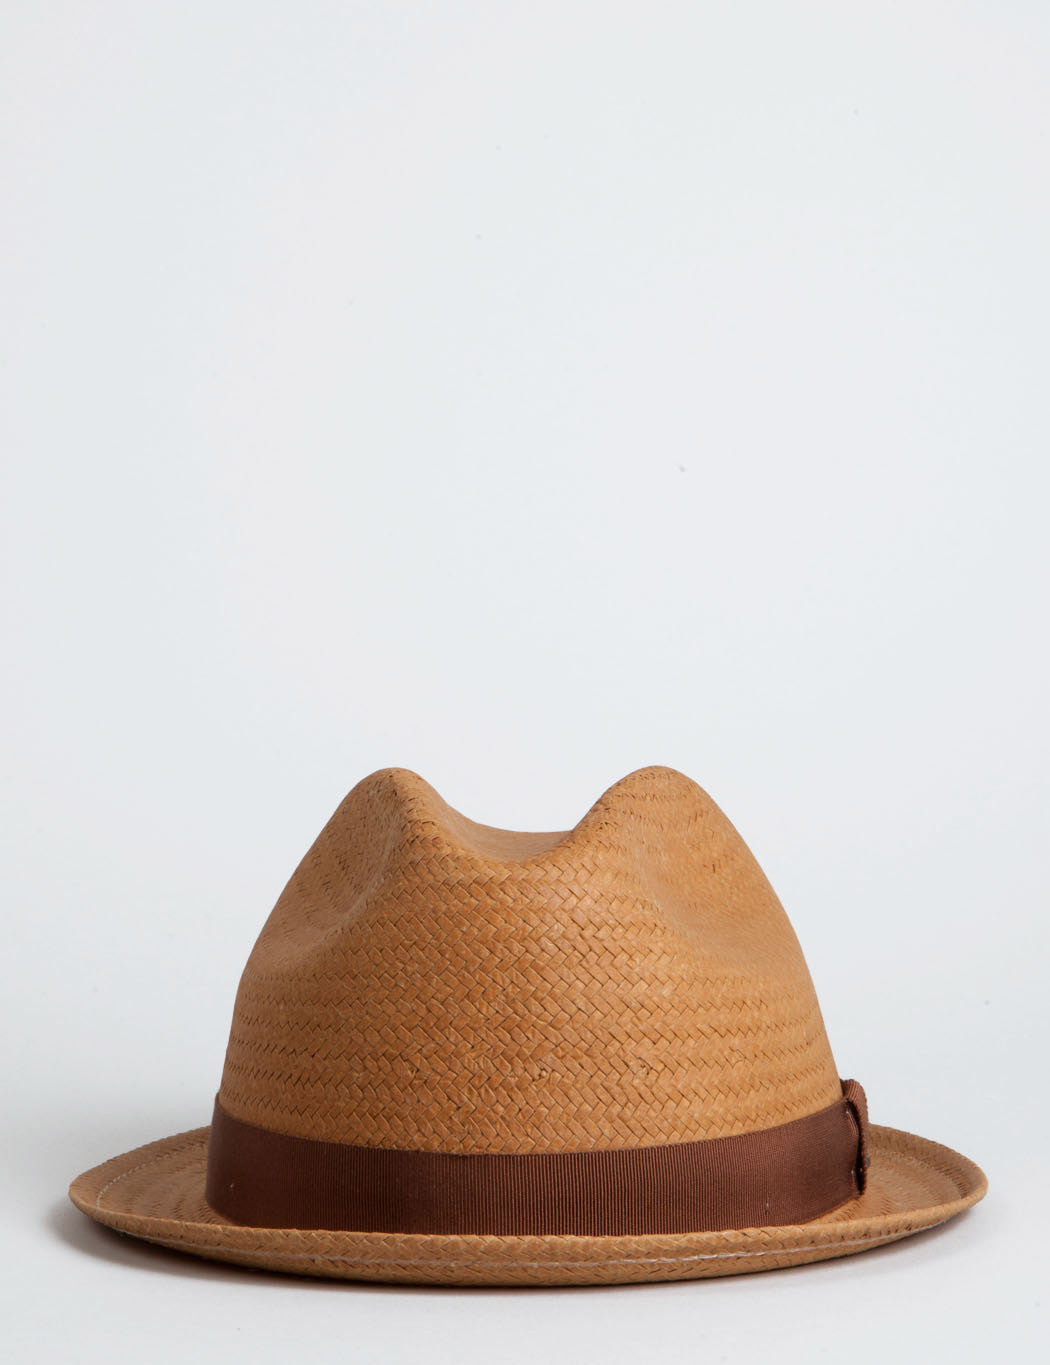 Bailey Wicket Straw Triby Hat - Cumin